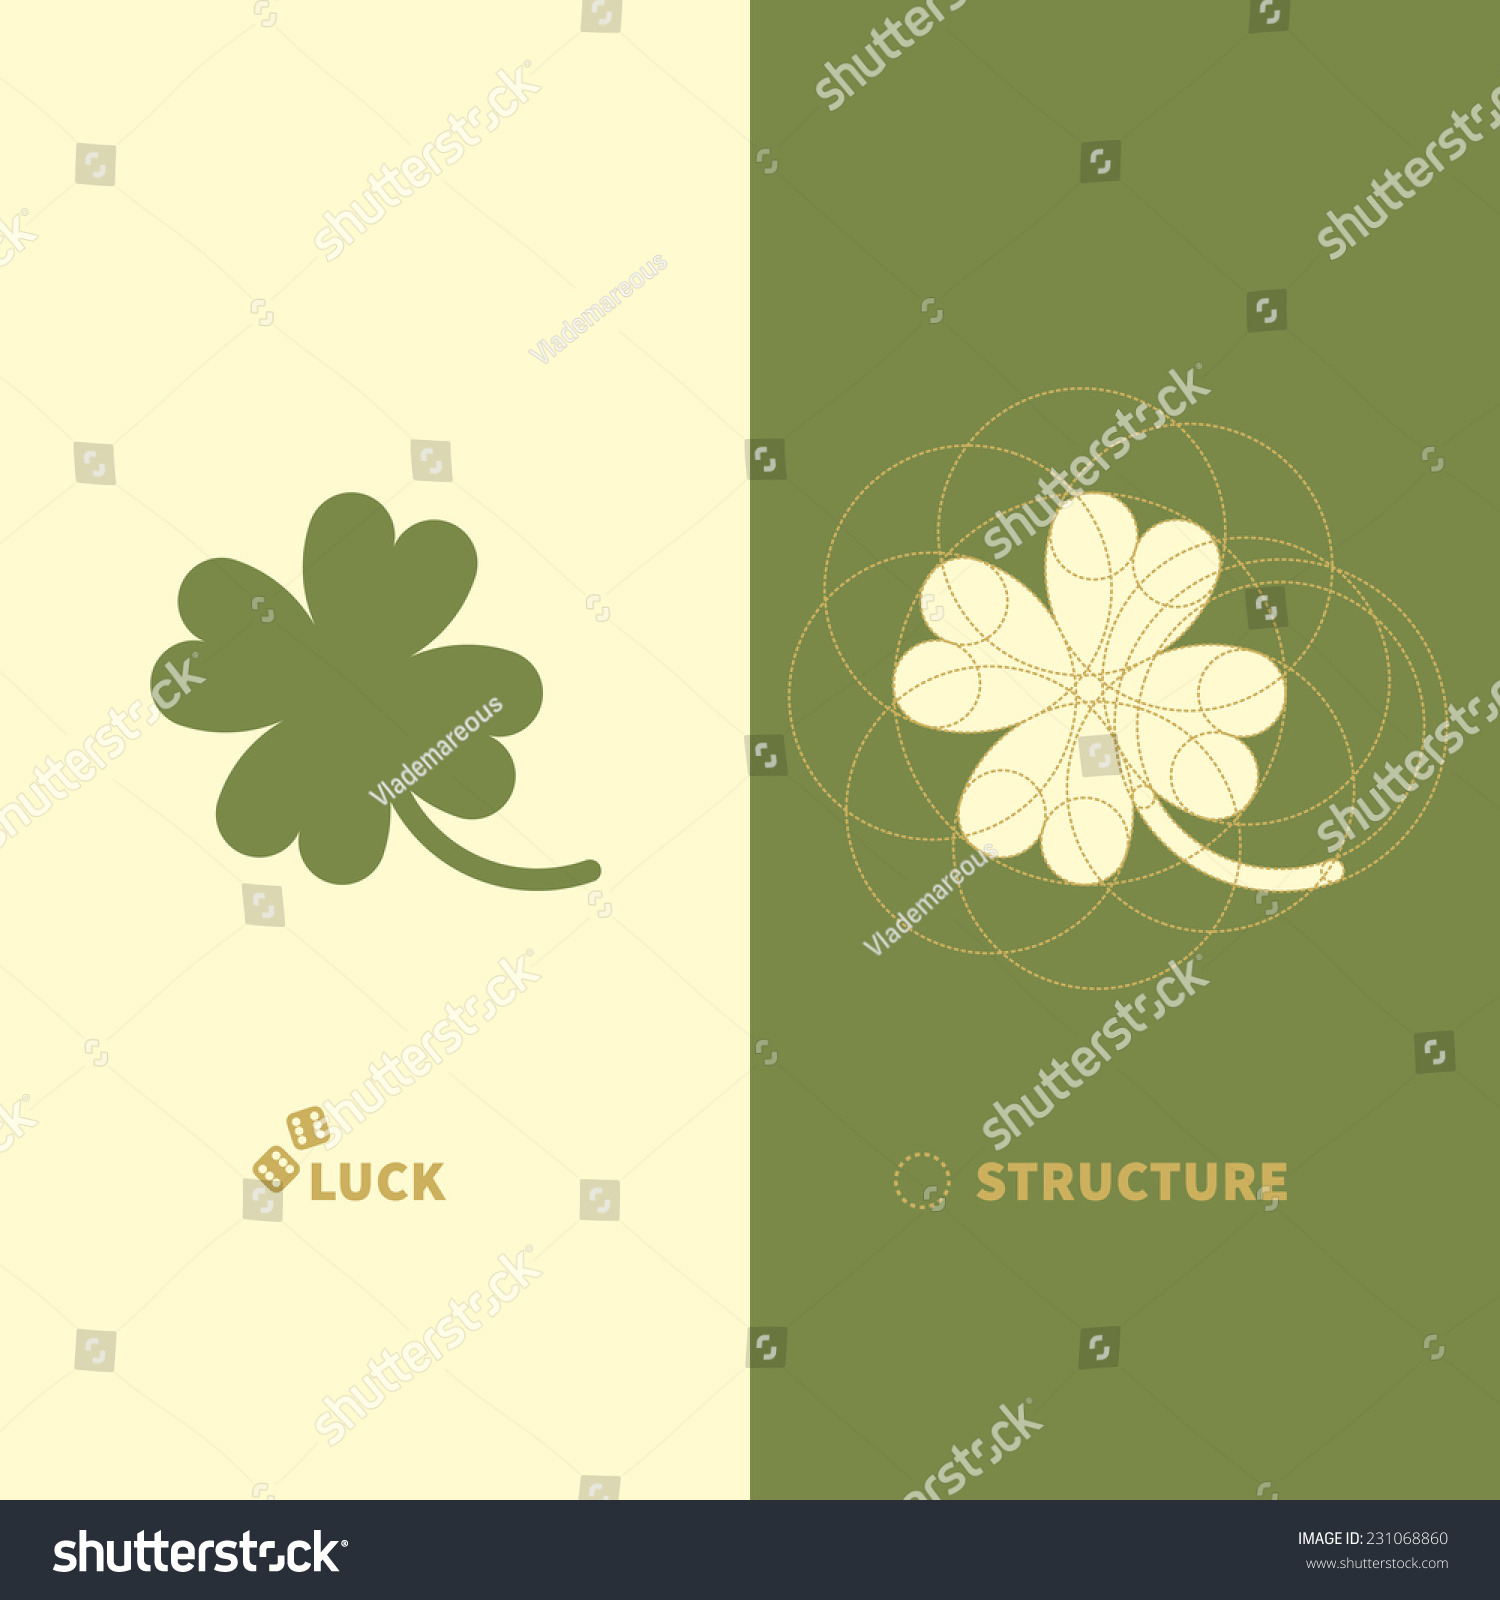 Cute 1 Inch Circle Template Small 1 Round Label Template Shaped 1.5 Inch Hexagon Template 10 Off Coupon Template Old 12 Team Schedule Template Orange15 Year Old Resume Template Minimalistic Vector Four Leaf Clover Icon Stock Vector 231068860 ..